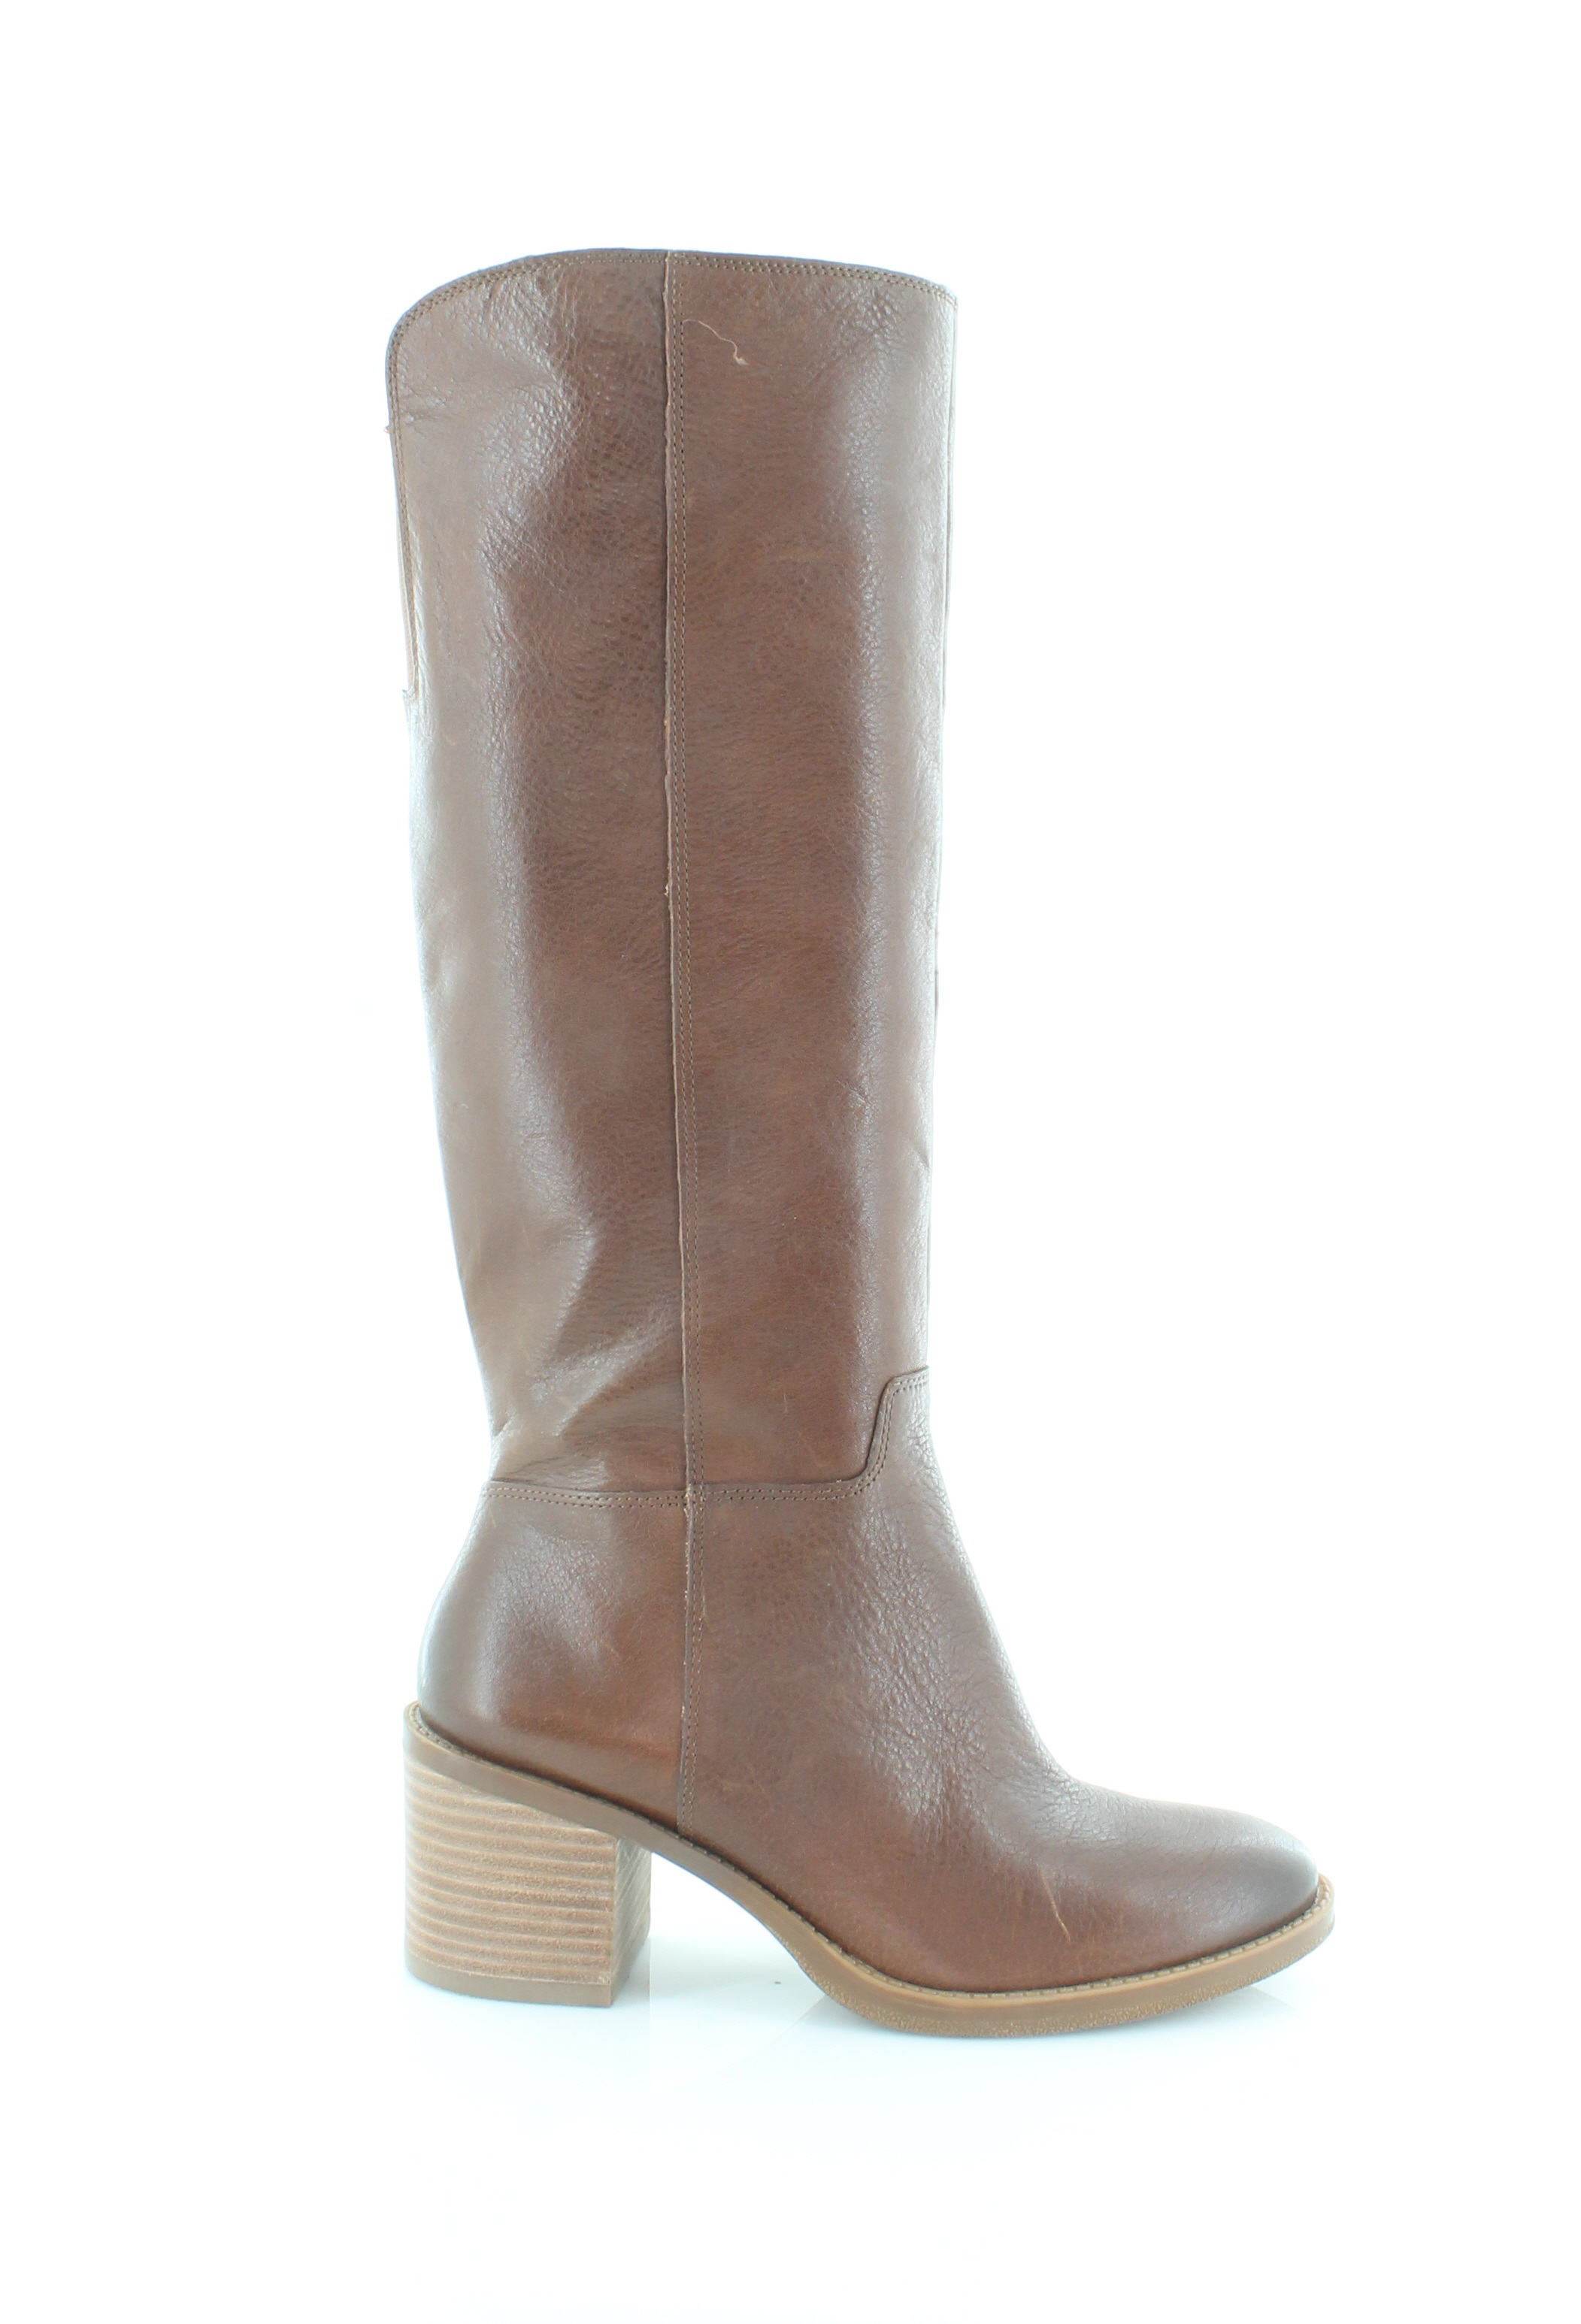 Lucky Brand Ritten Brown Womens Shoes Size 8.5 M Boots MSRP $209